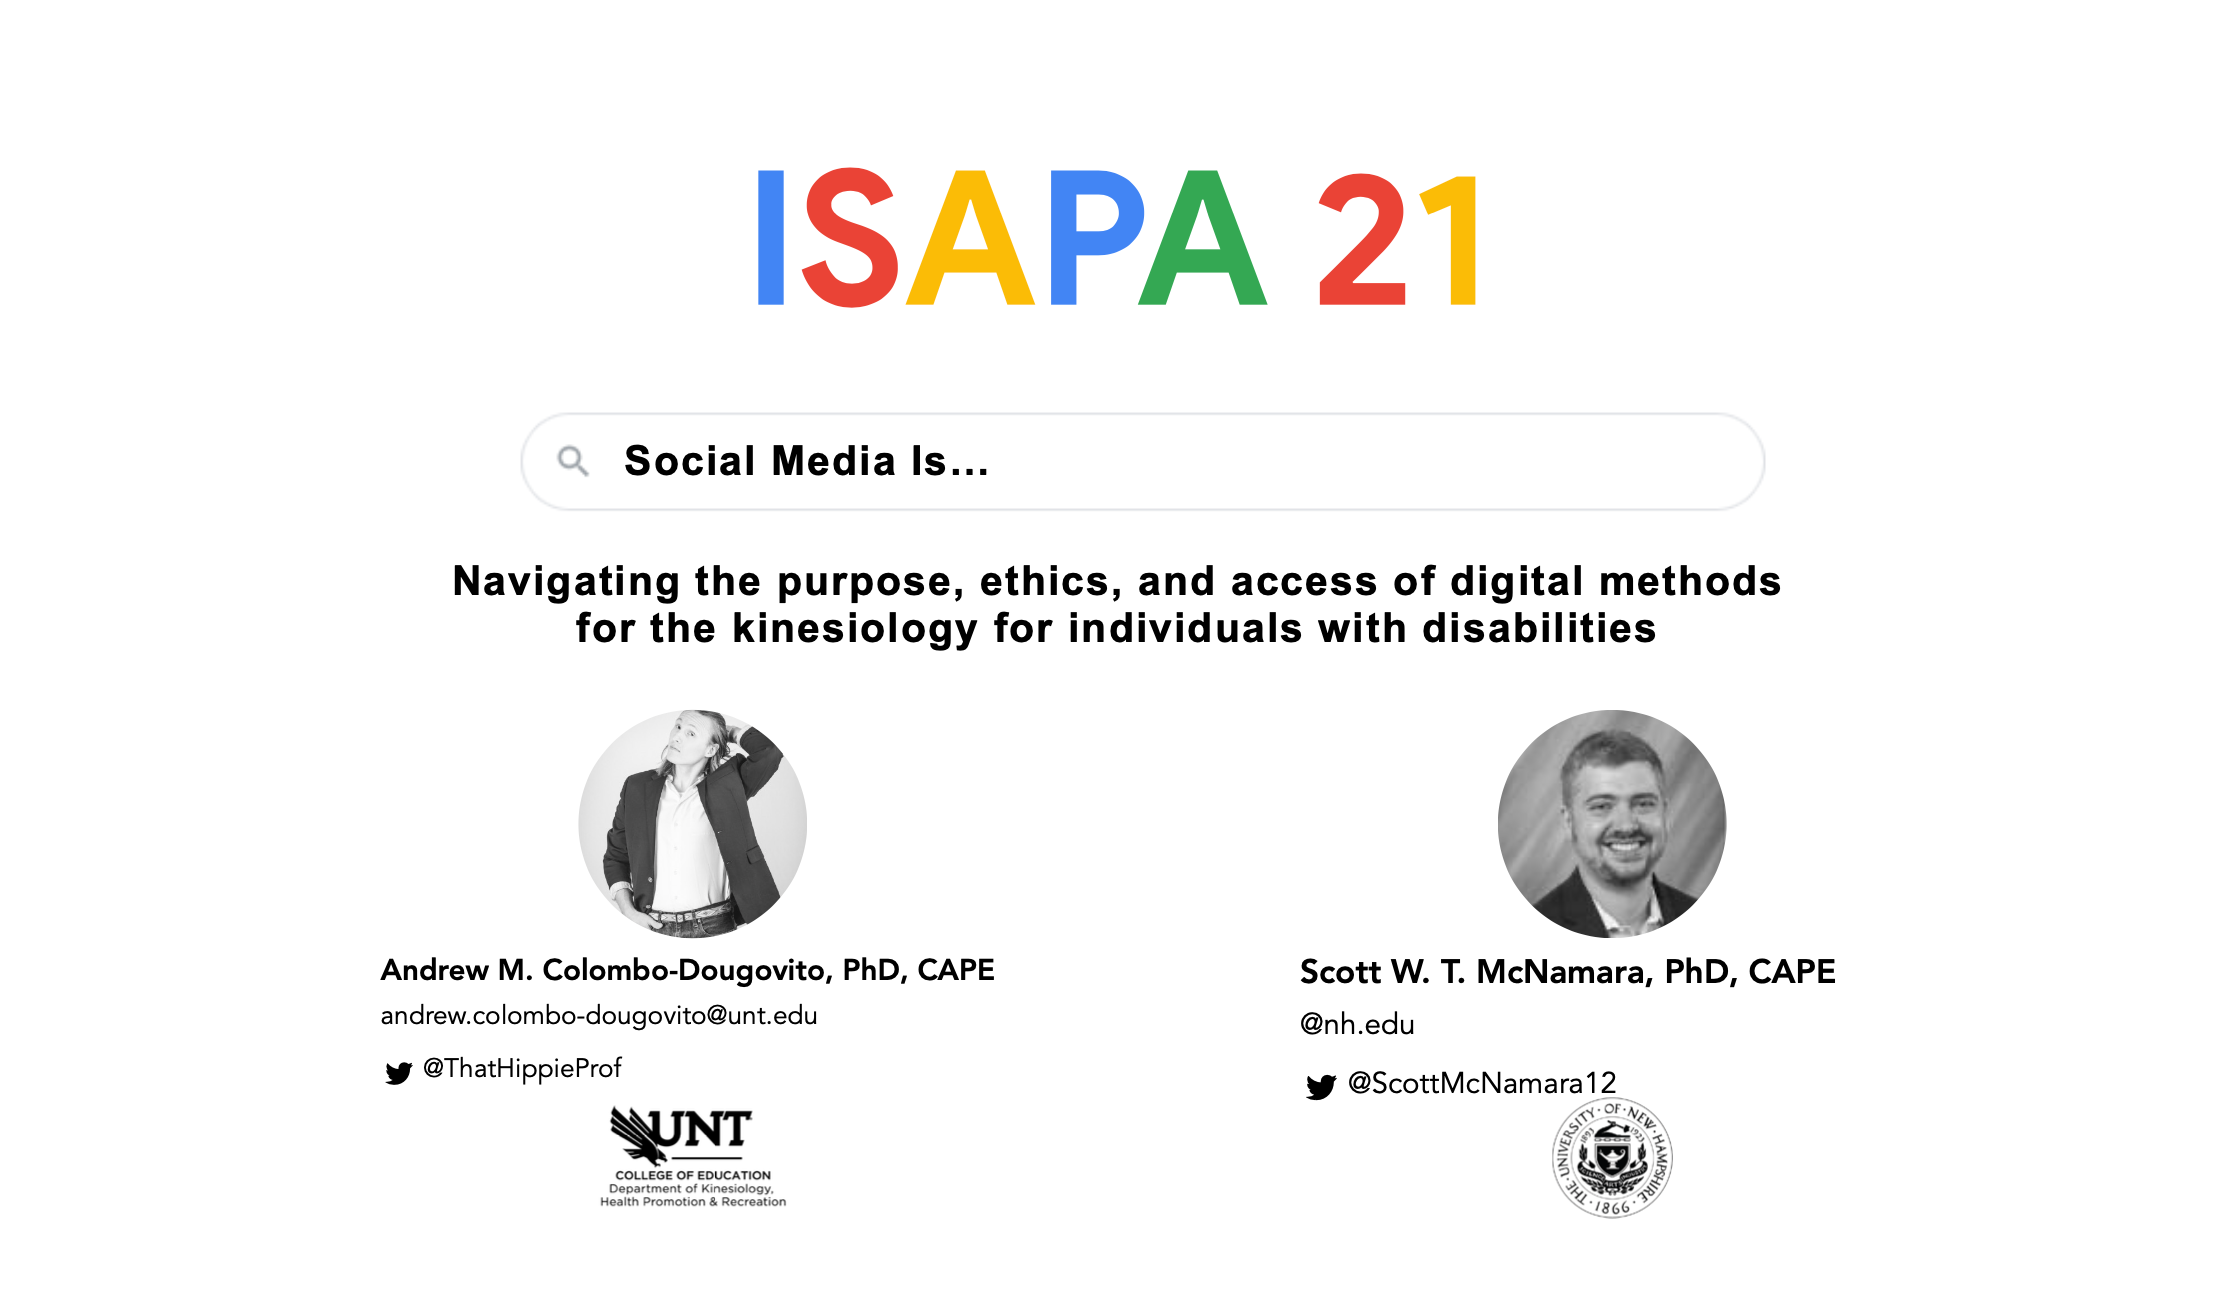 Social media is...: Navigating the purpose, ethics, and access of digital methods for the kinesiology for individuals with disabilities.